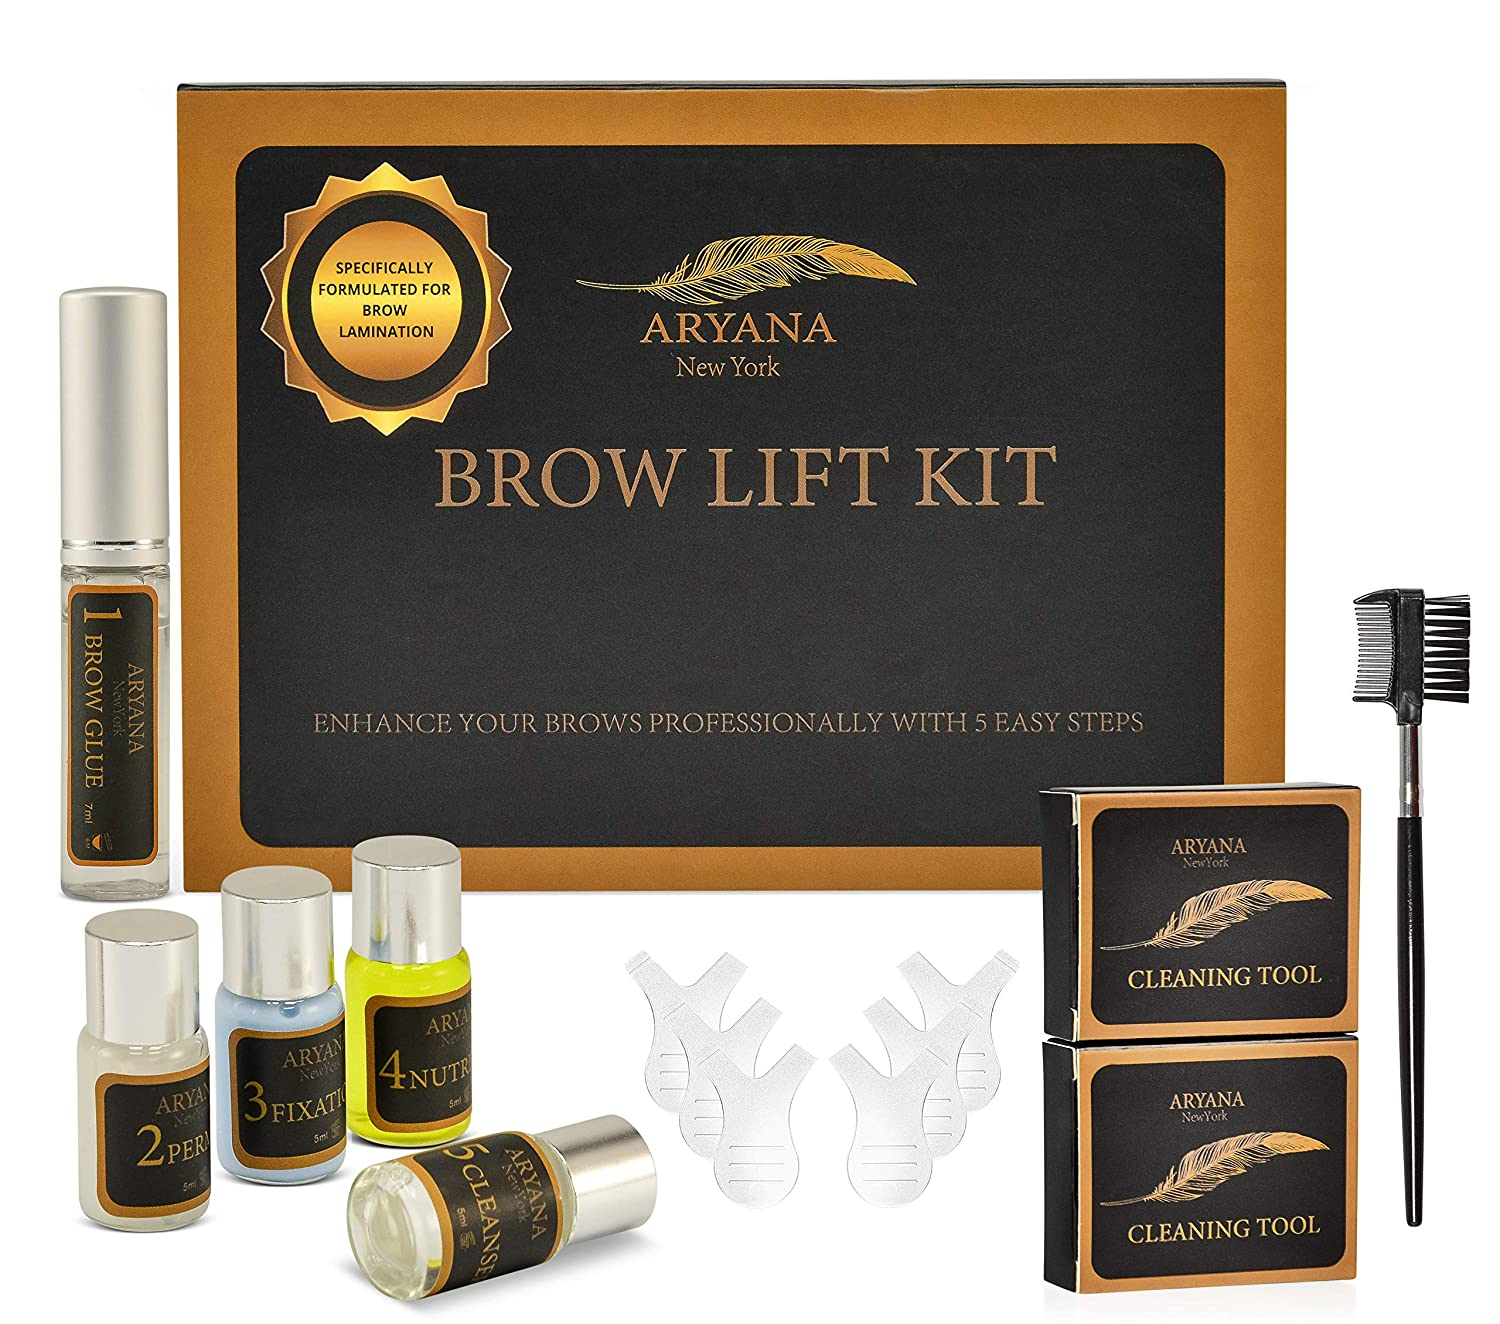 Brow Lift Kit, Brow Lamination, Brow Perm, Specifically Formulated for Brow Lamination, Natural Brow Botox